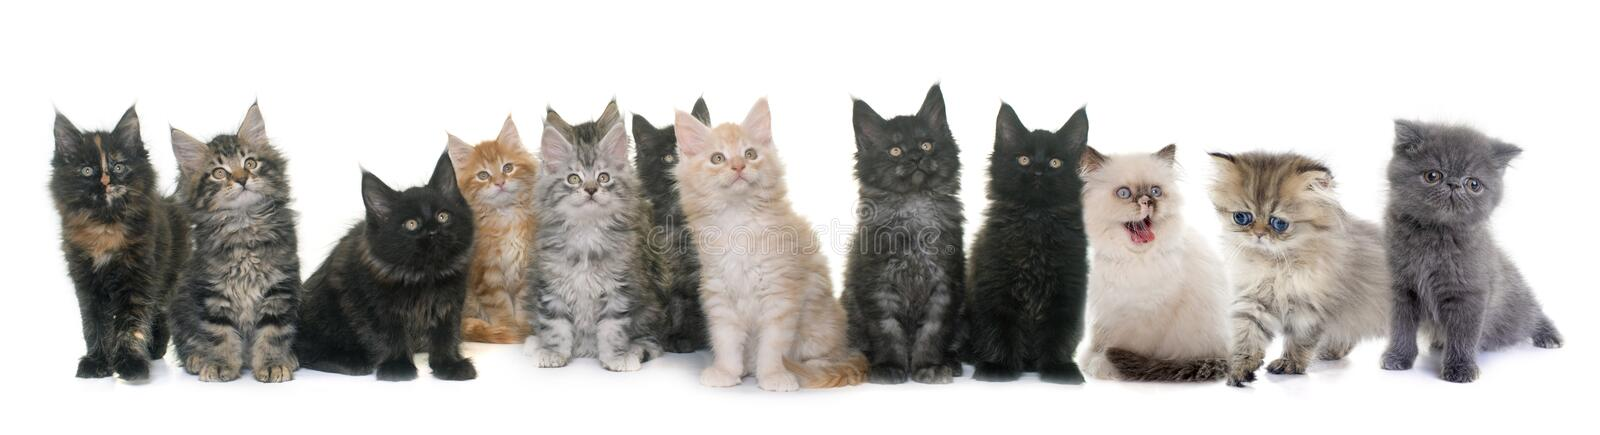 Group of kitten royalty free stock photography